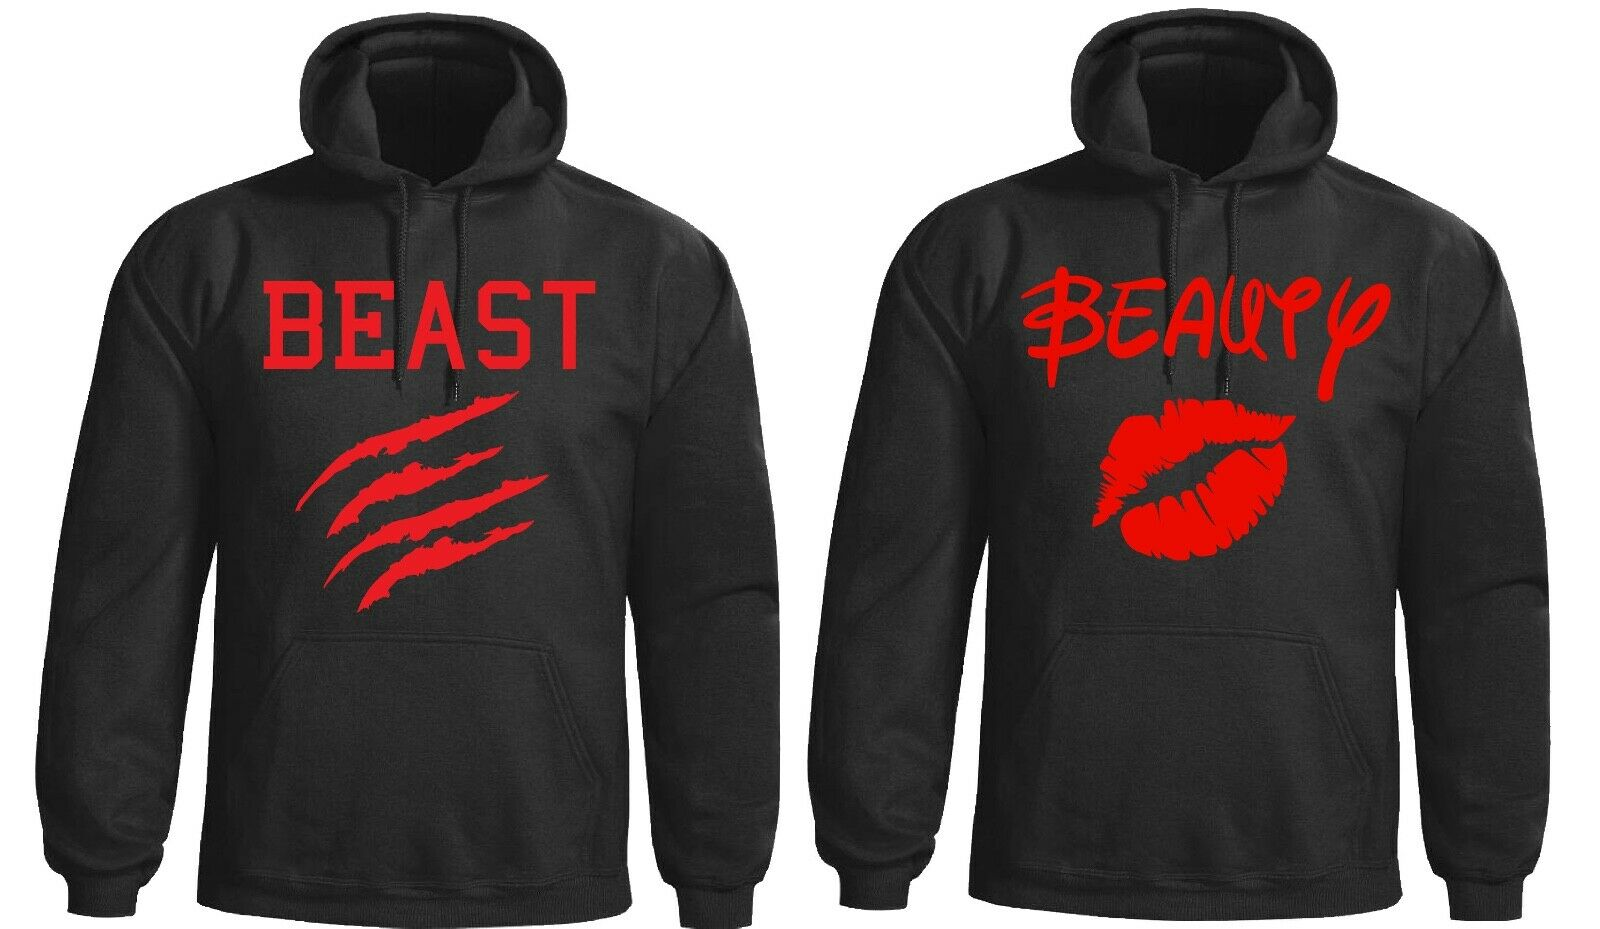 Beauty and The beast hoodies red design hooded sweatshirt adults+kids